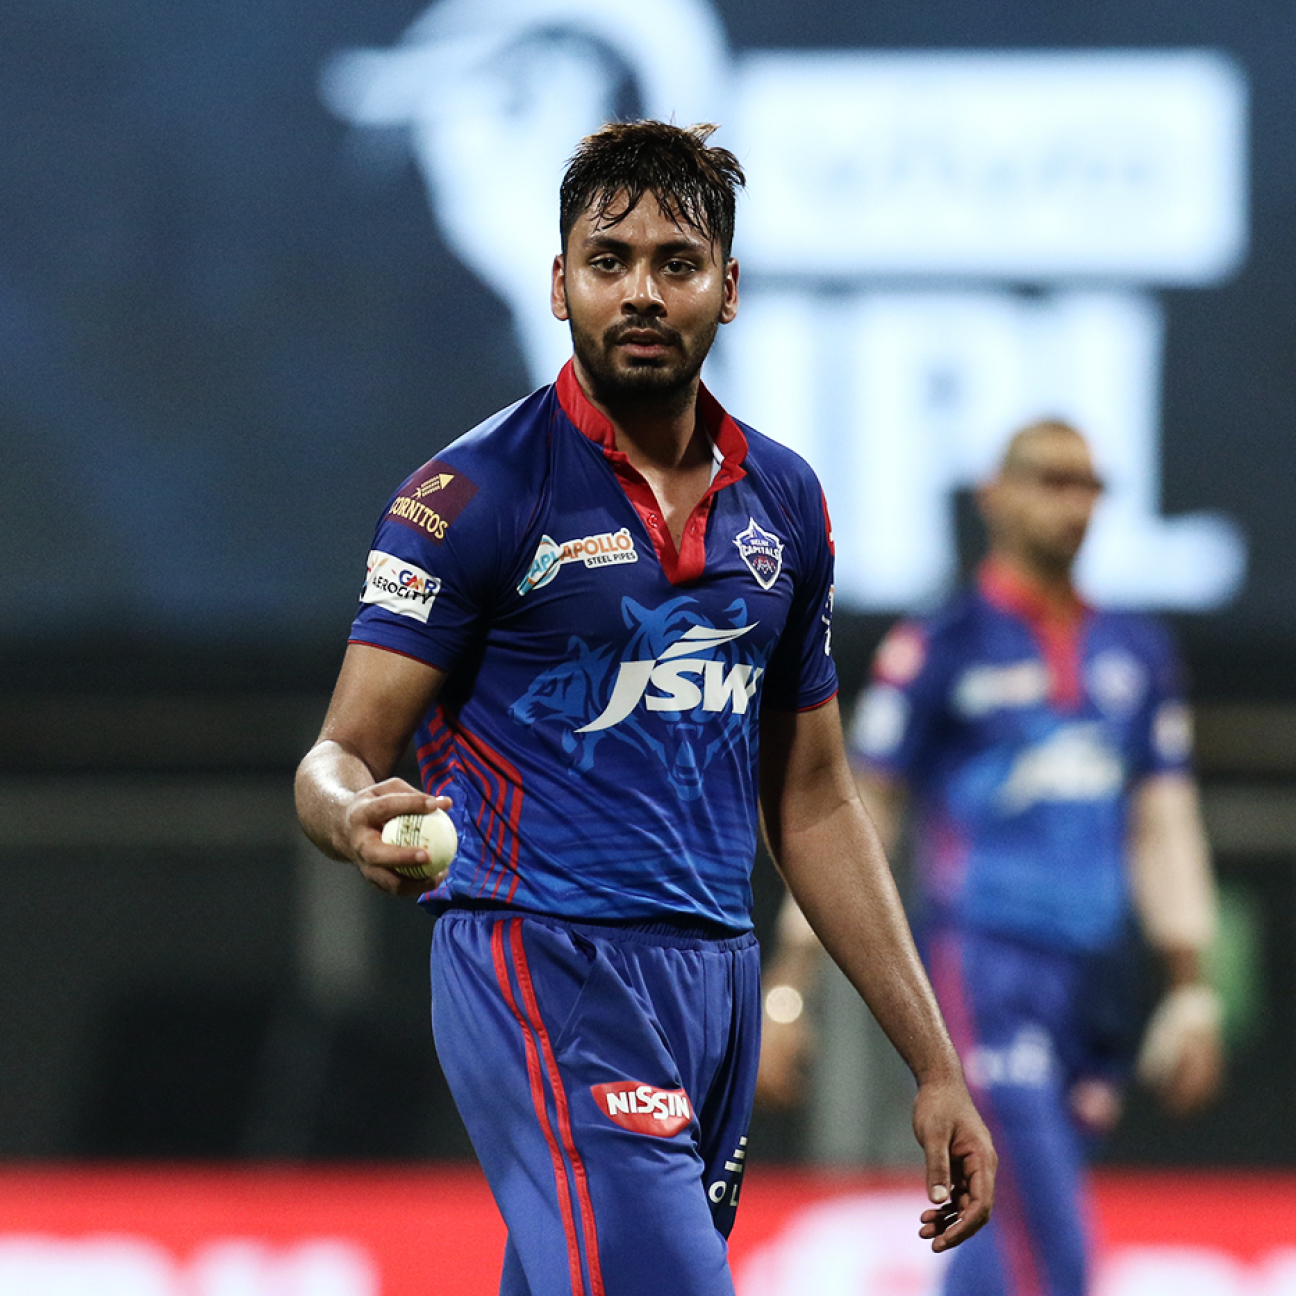 Young Delhi Capitals fast bowler Avesh Khan is ready for the next level